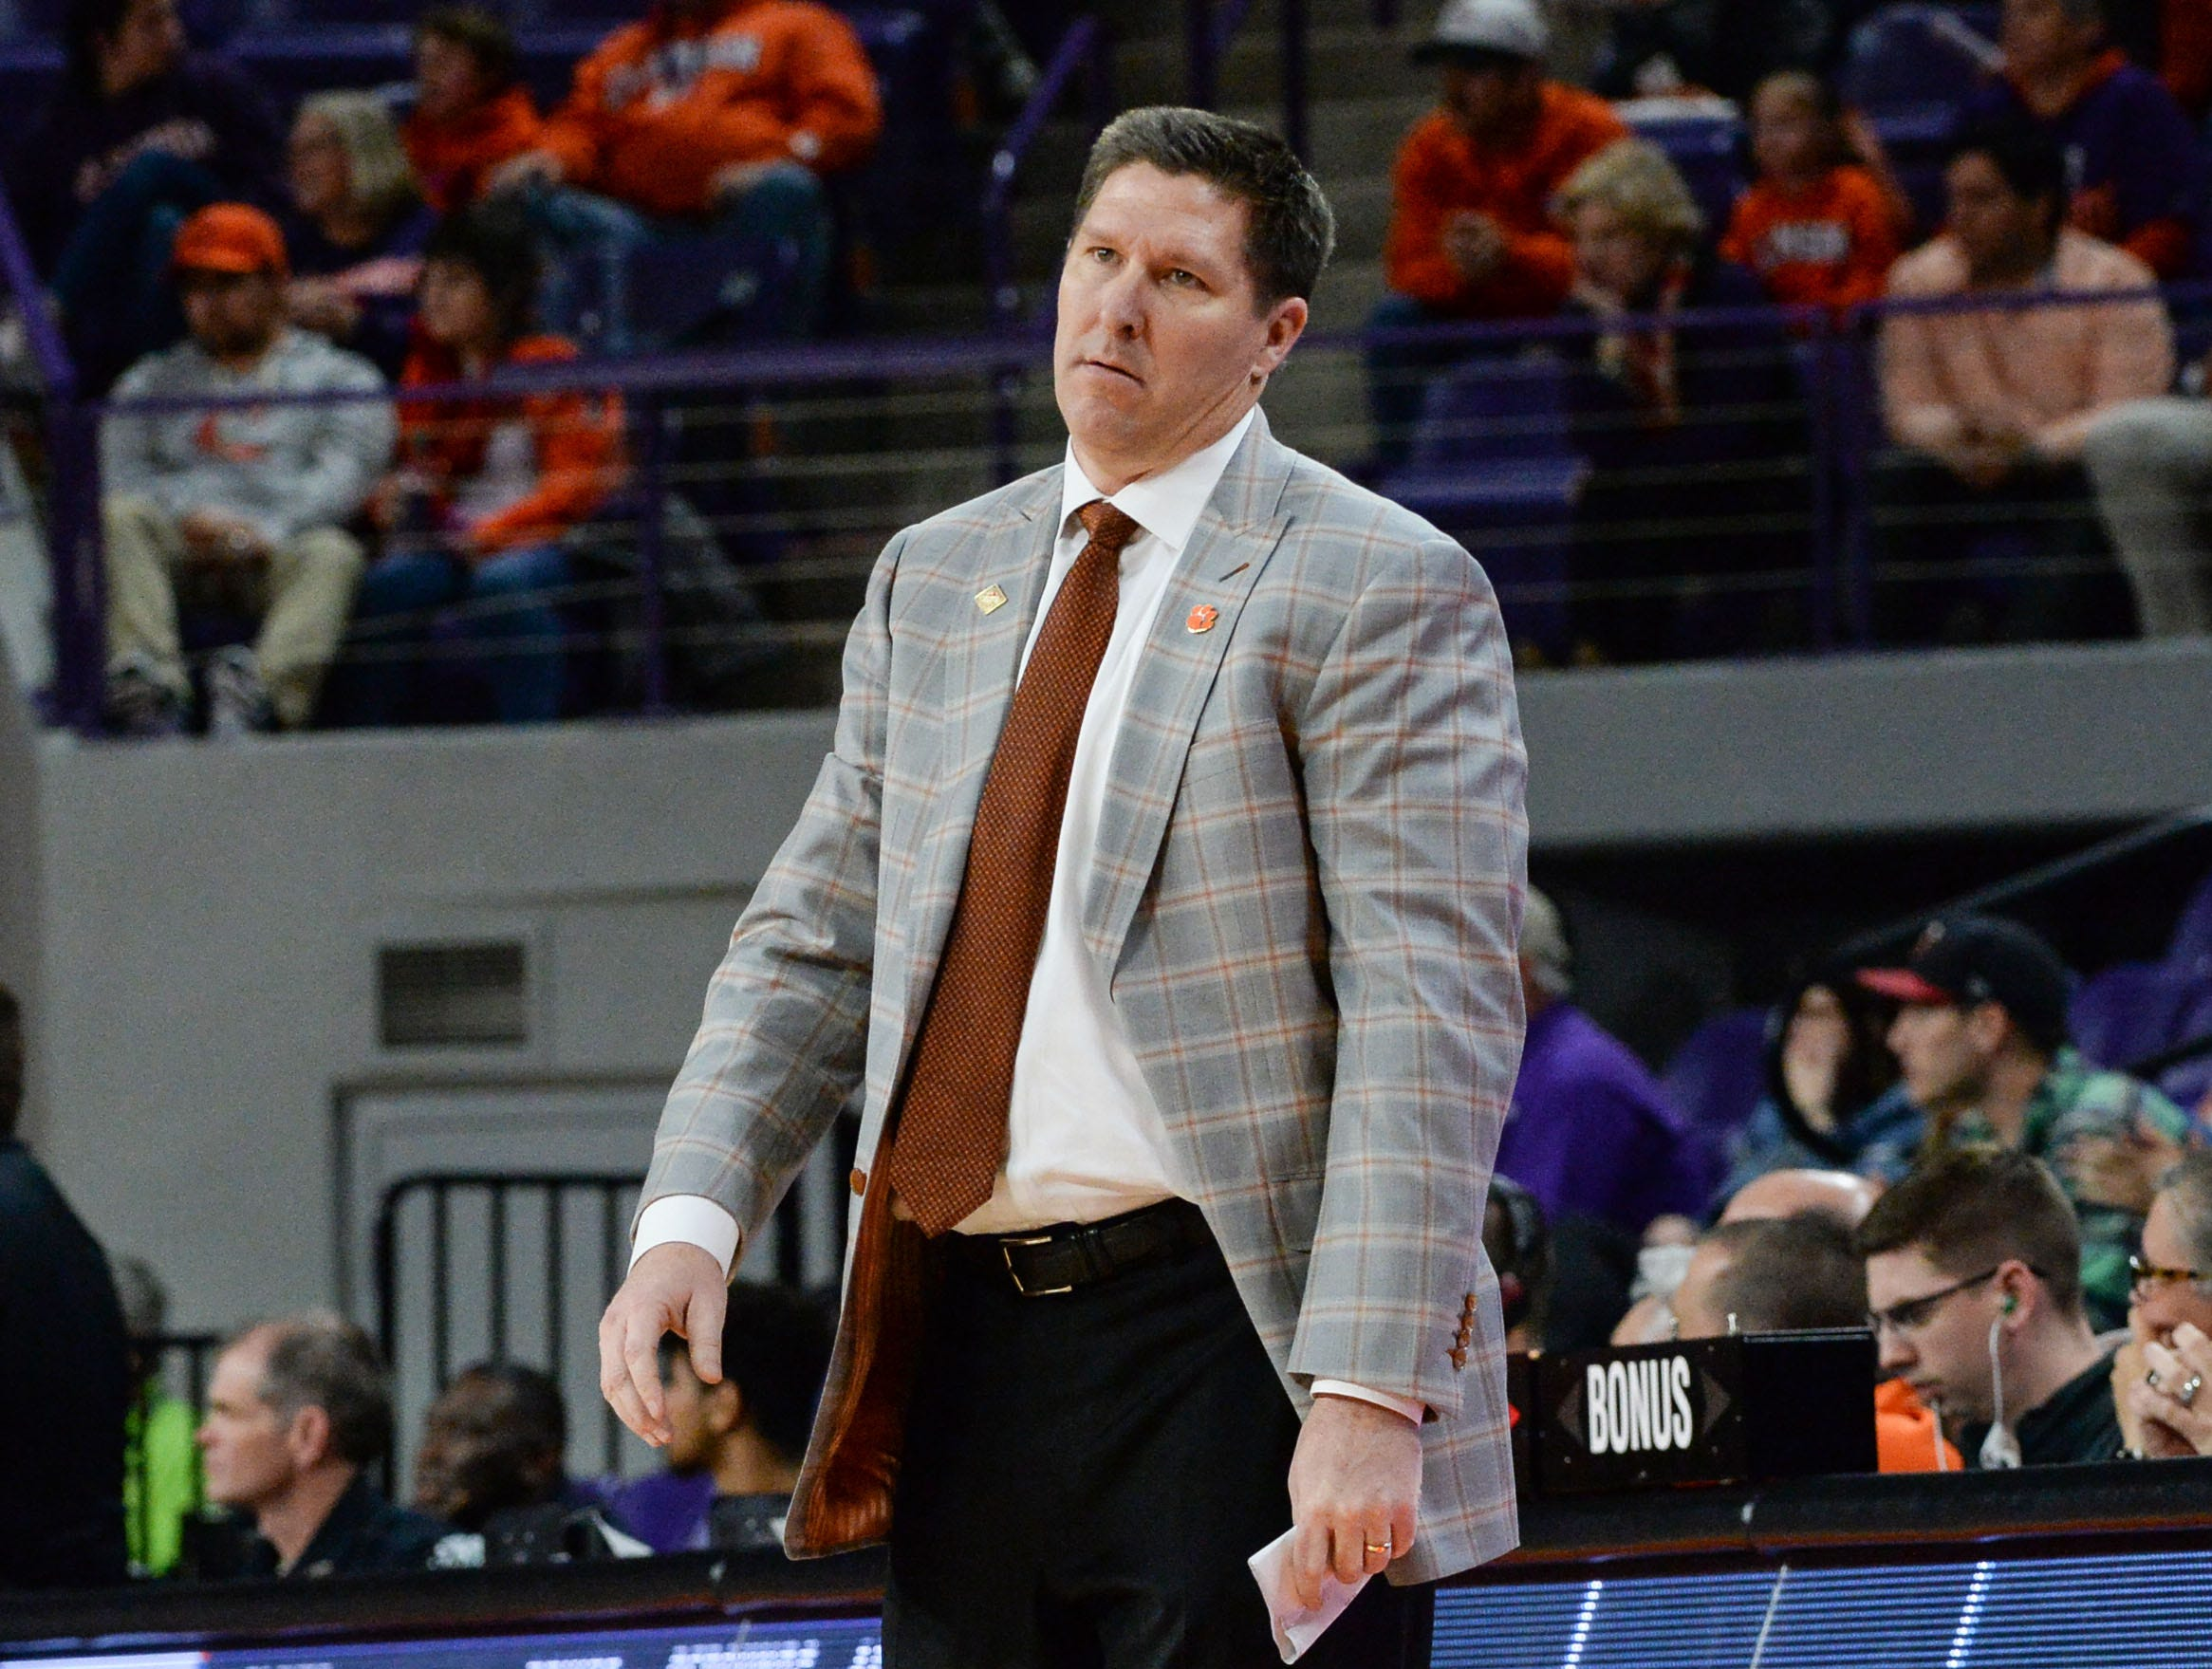 Clemson head coach Brad Brownell reacts during the second half of the NIT against Wright State at Littlejohn Coliseum in Clemson Tuesday, March 19, 2019.